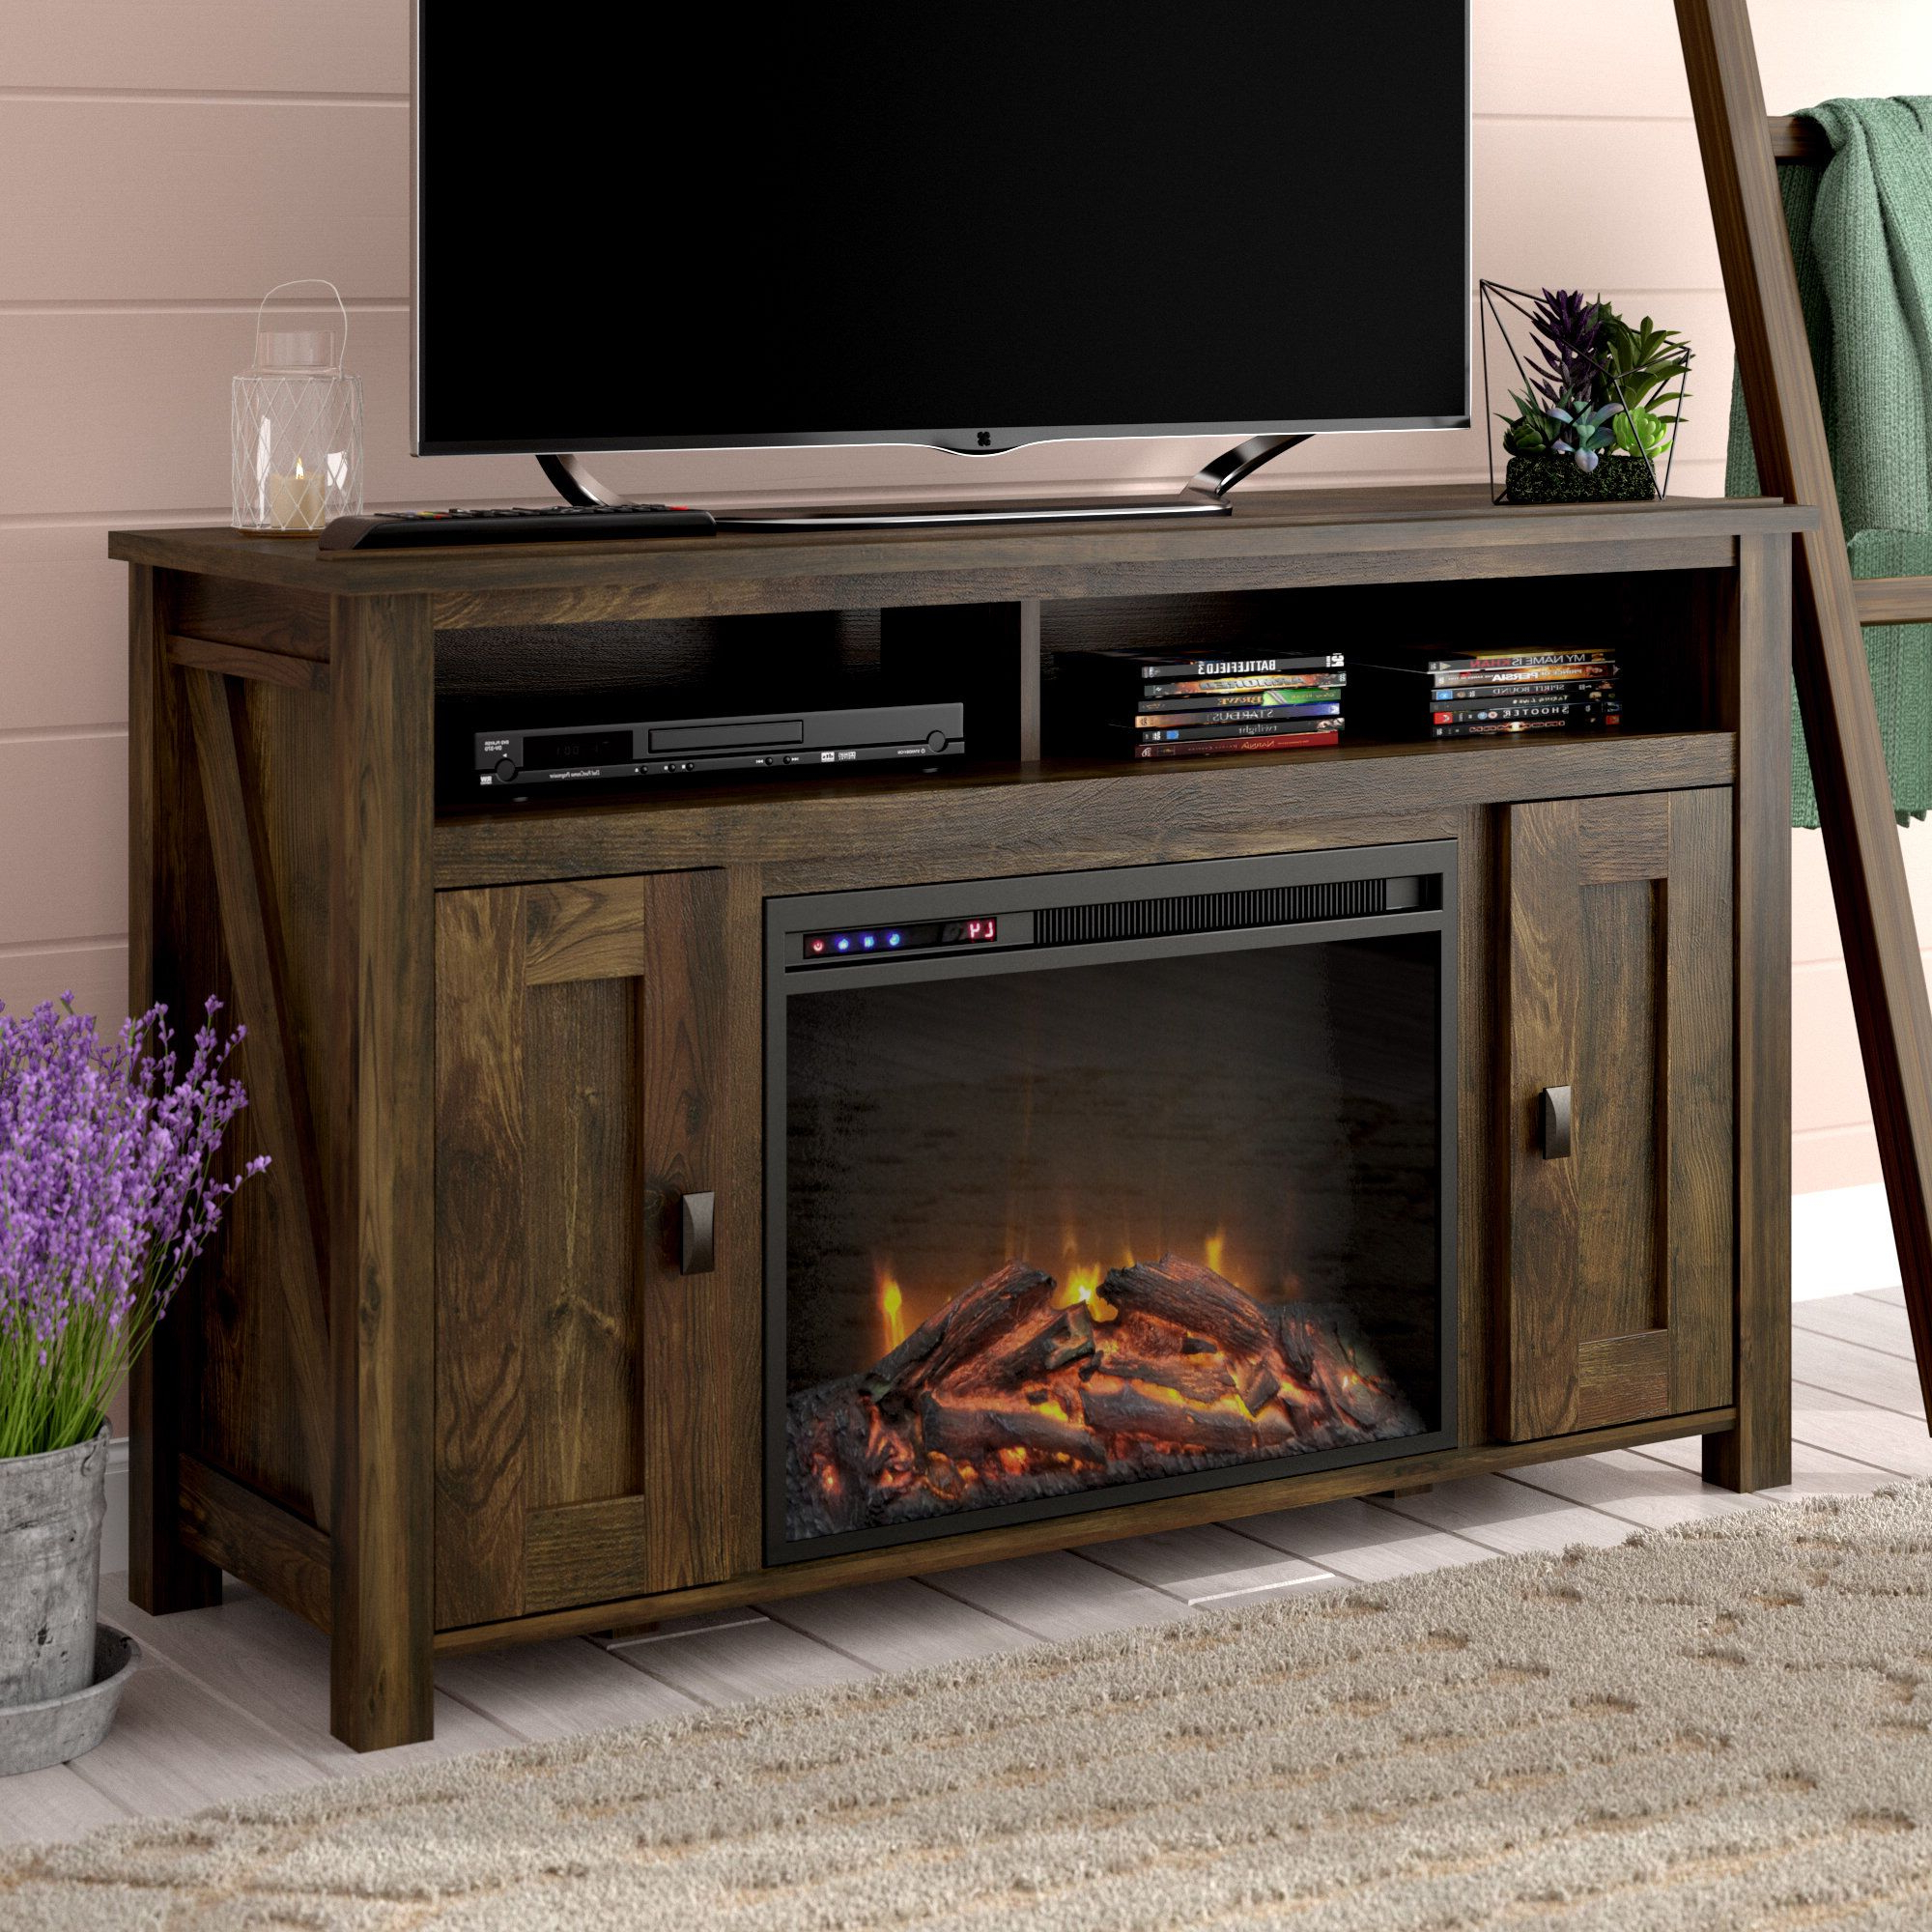 """Well Known Whittier Tv Stand For Tvs Up To 50"""" With Electric For Mclelland Tv Stands For Tvs Up To 50"""" (View 7 of 25)"""